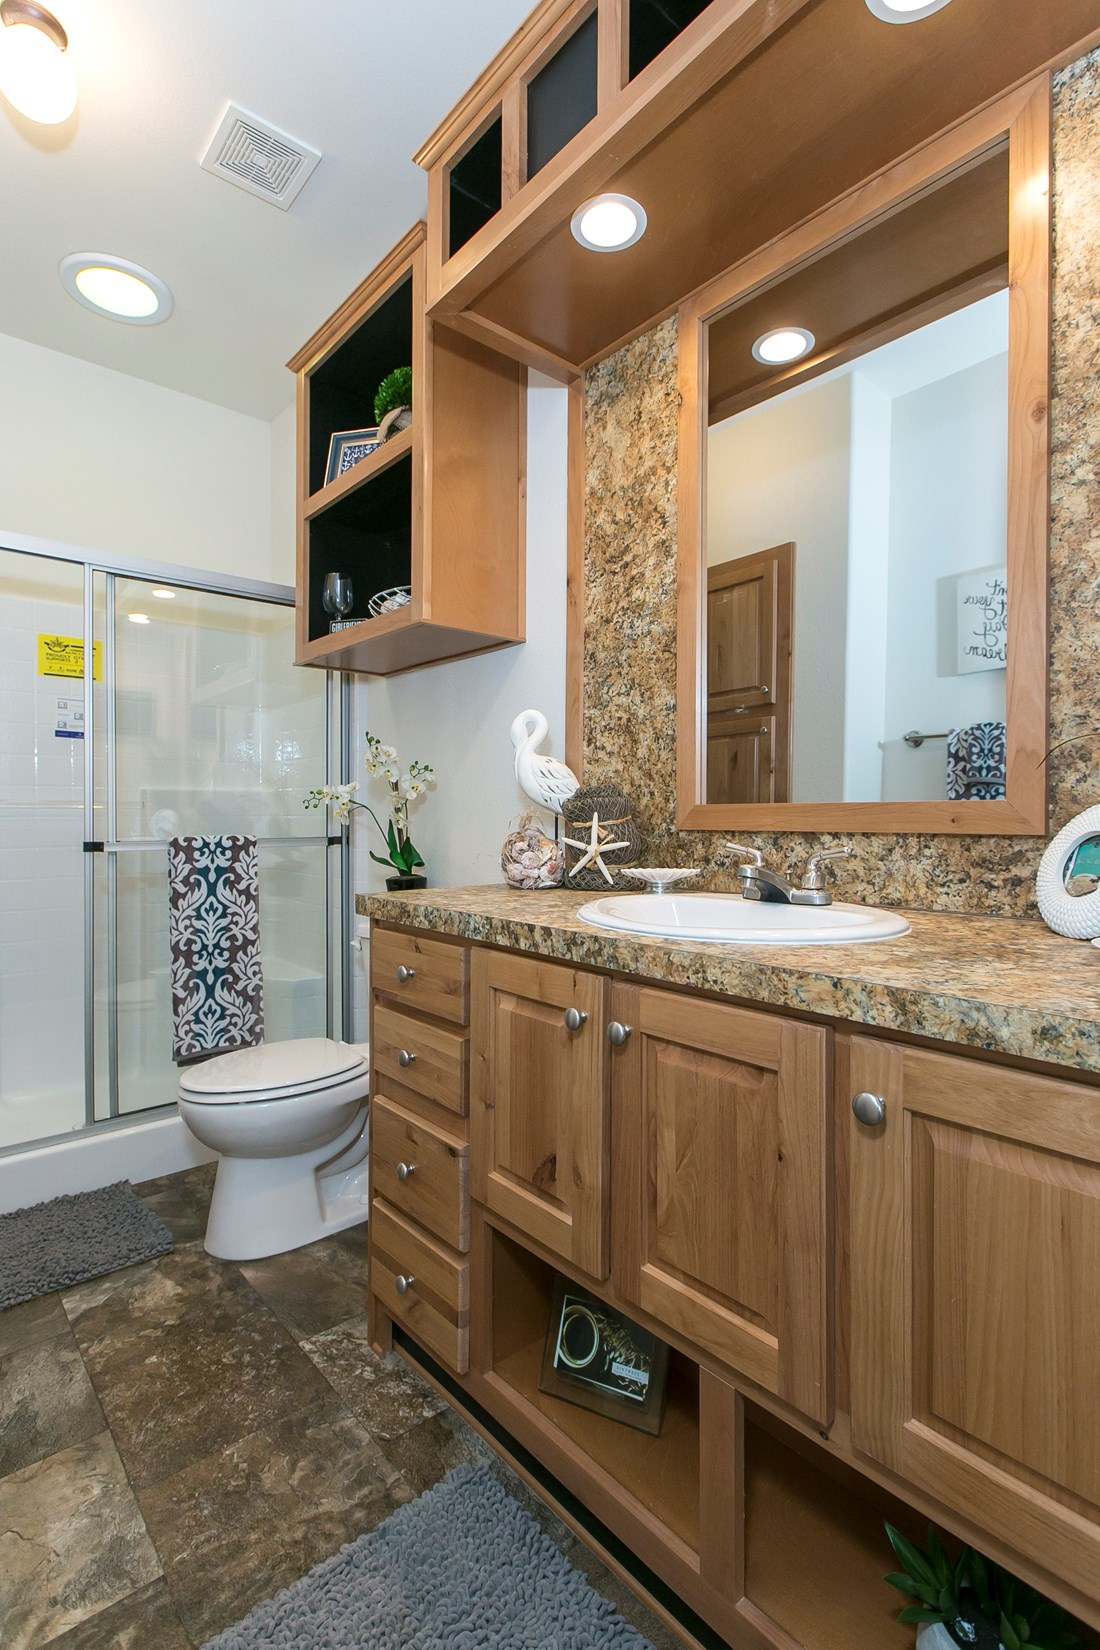 The ING382F REDWOOD II   (FULL) GW Master Bathroom. This Manufactured Mobile Home features 2 bedrooms and 2 baths.